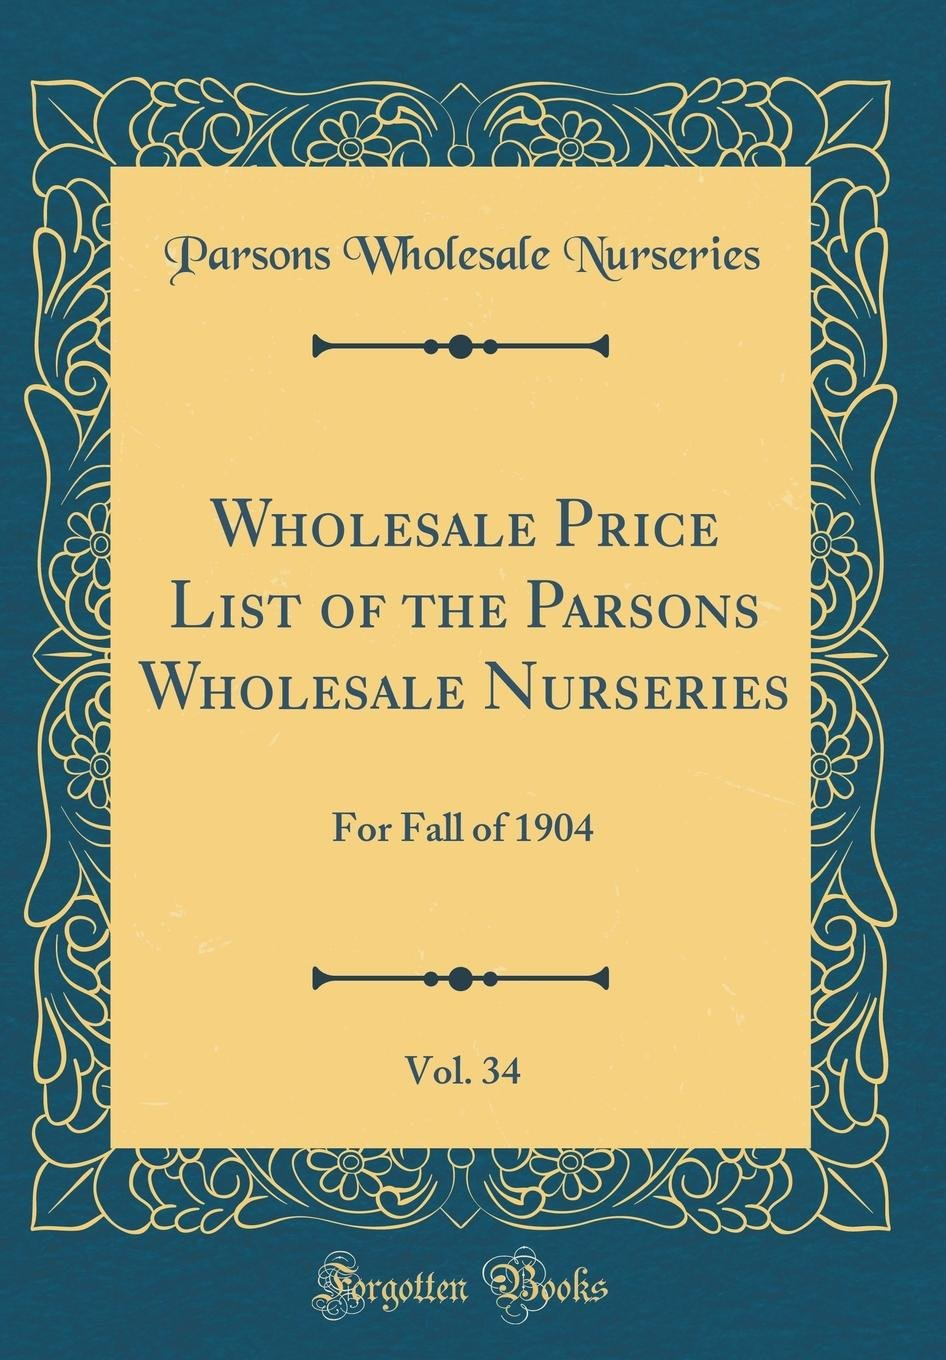 Download Wholesale Price List of the Parsons Wholesale Nurseries, Vol. 34: For Fall of 1904 (Classic Reprint) ebook